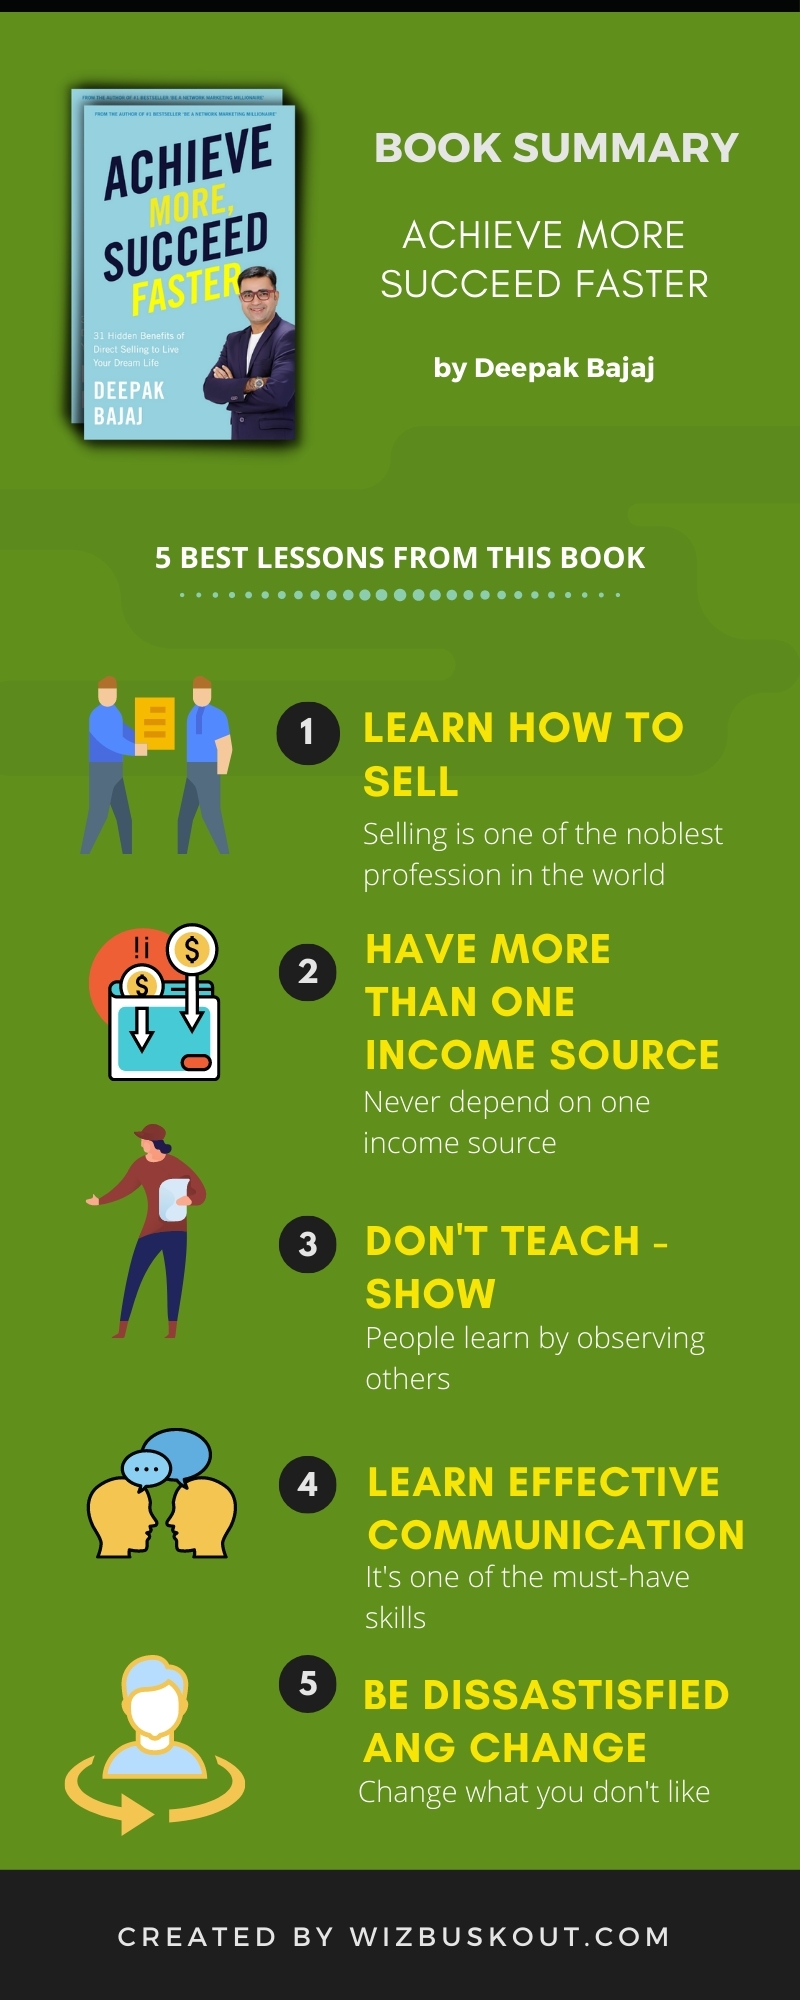 Achieve More Succeed Faster by Deepak Bajaj Summary Infographic